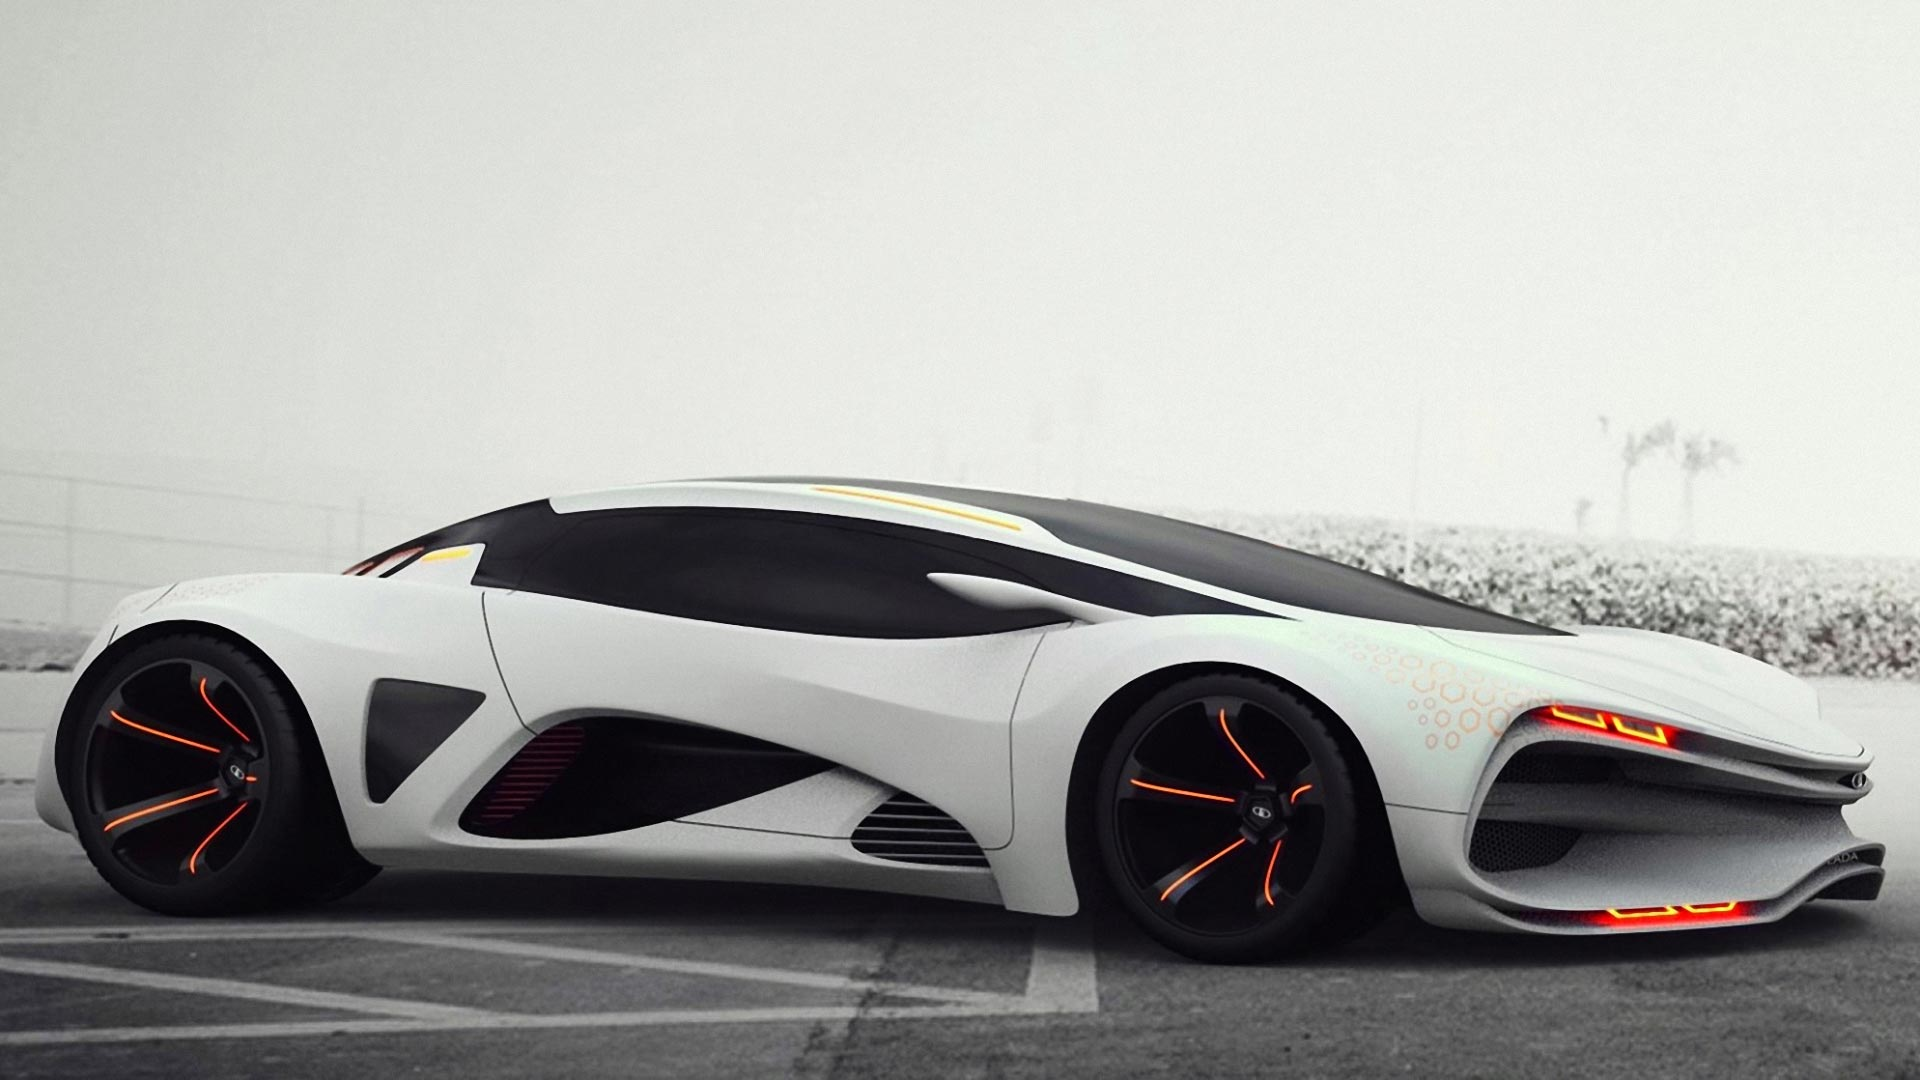 Concept cars theme for windows 10 8 7 - Car wallpaper for windows 7 ...